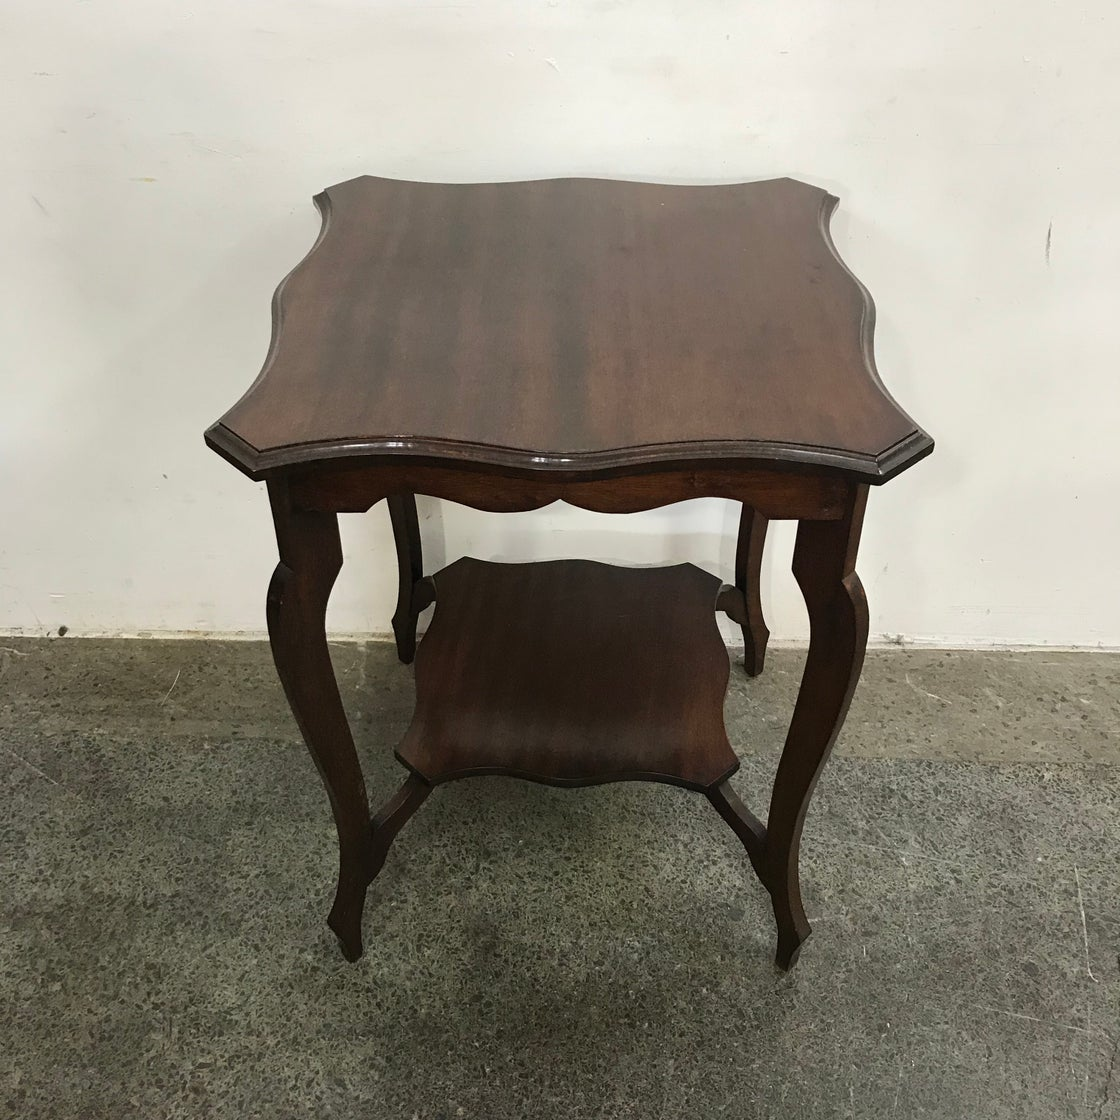 Image of ANTIQUE OCCASIONAL TABLE